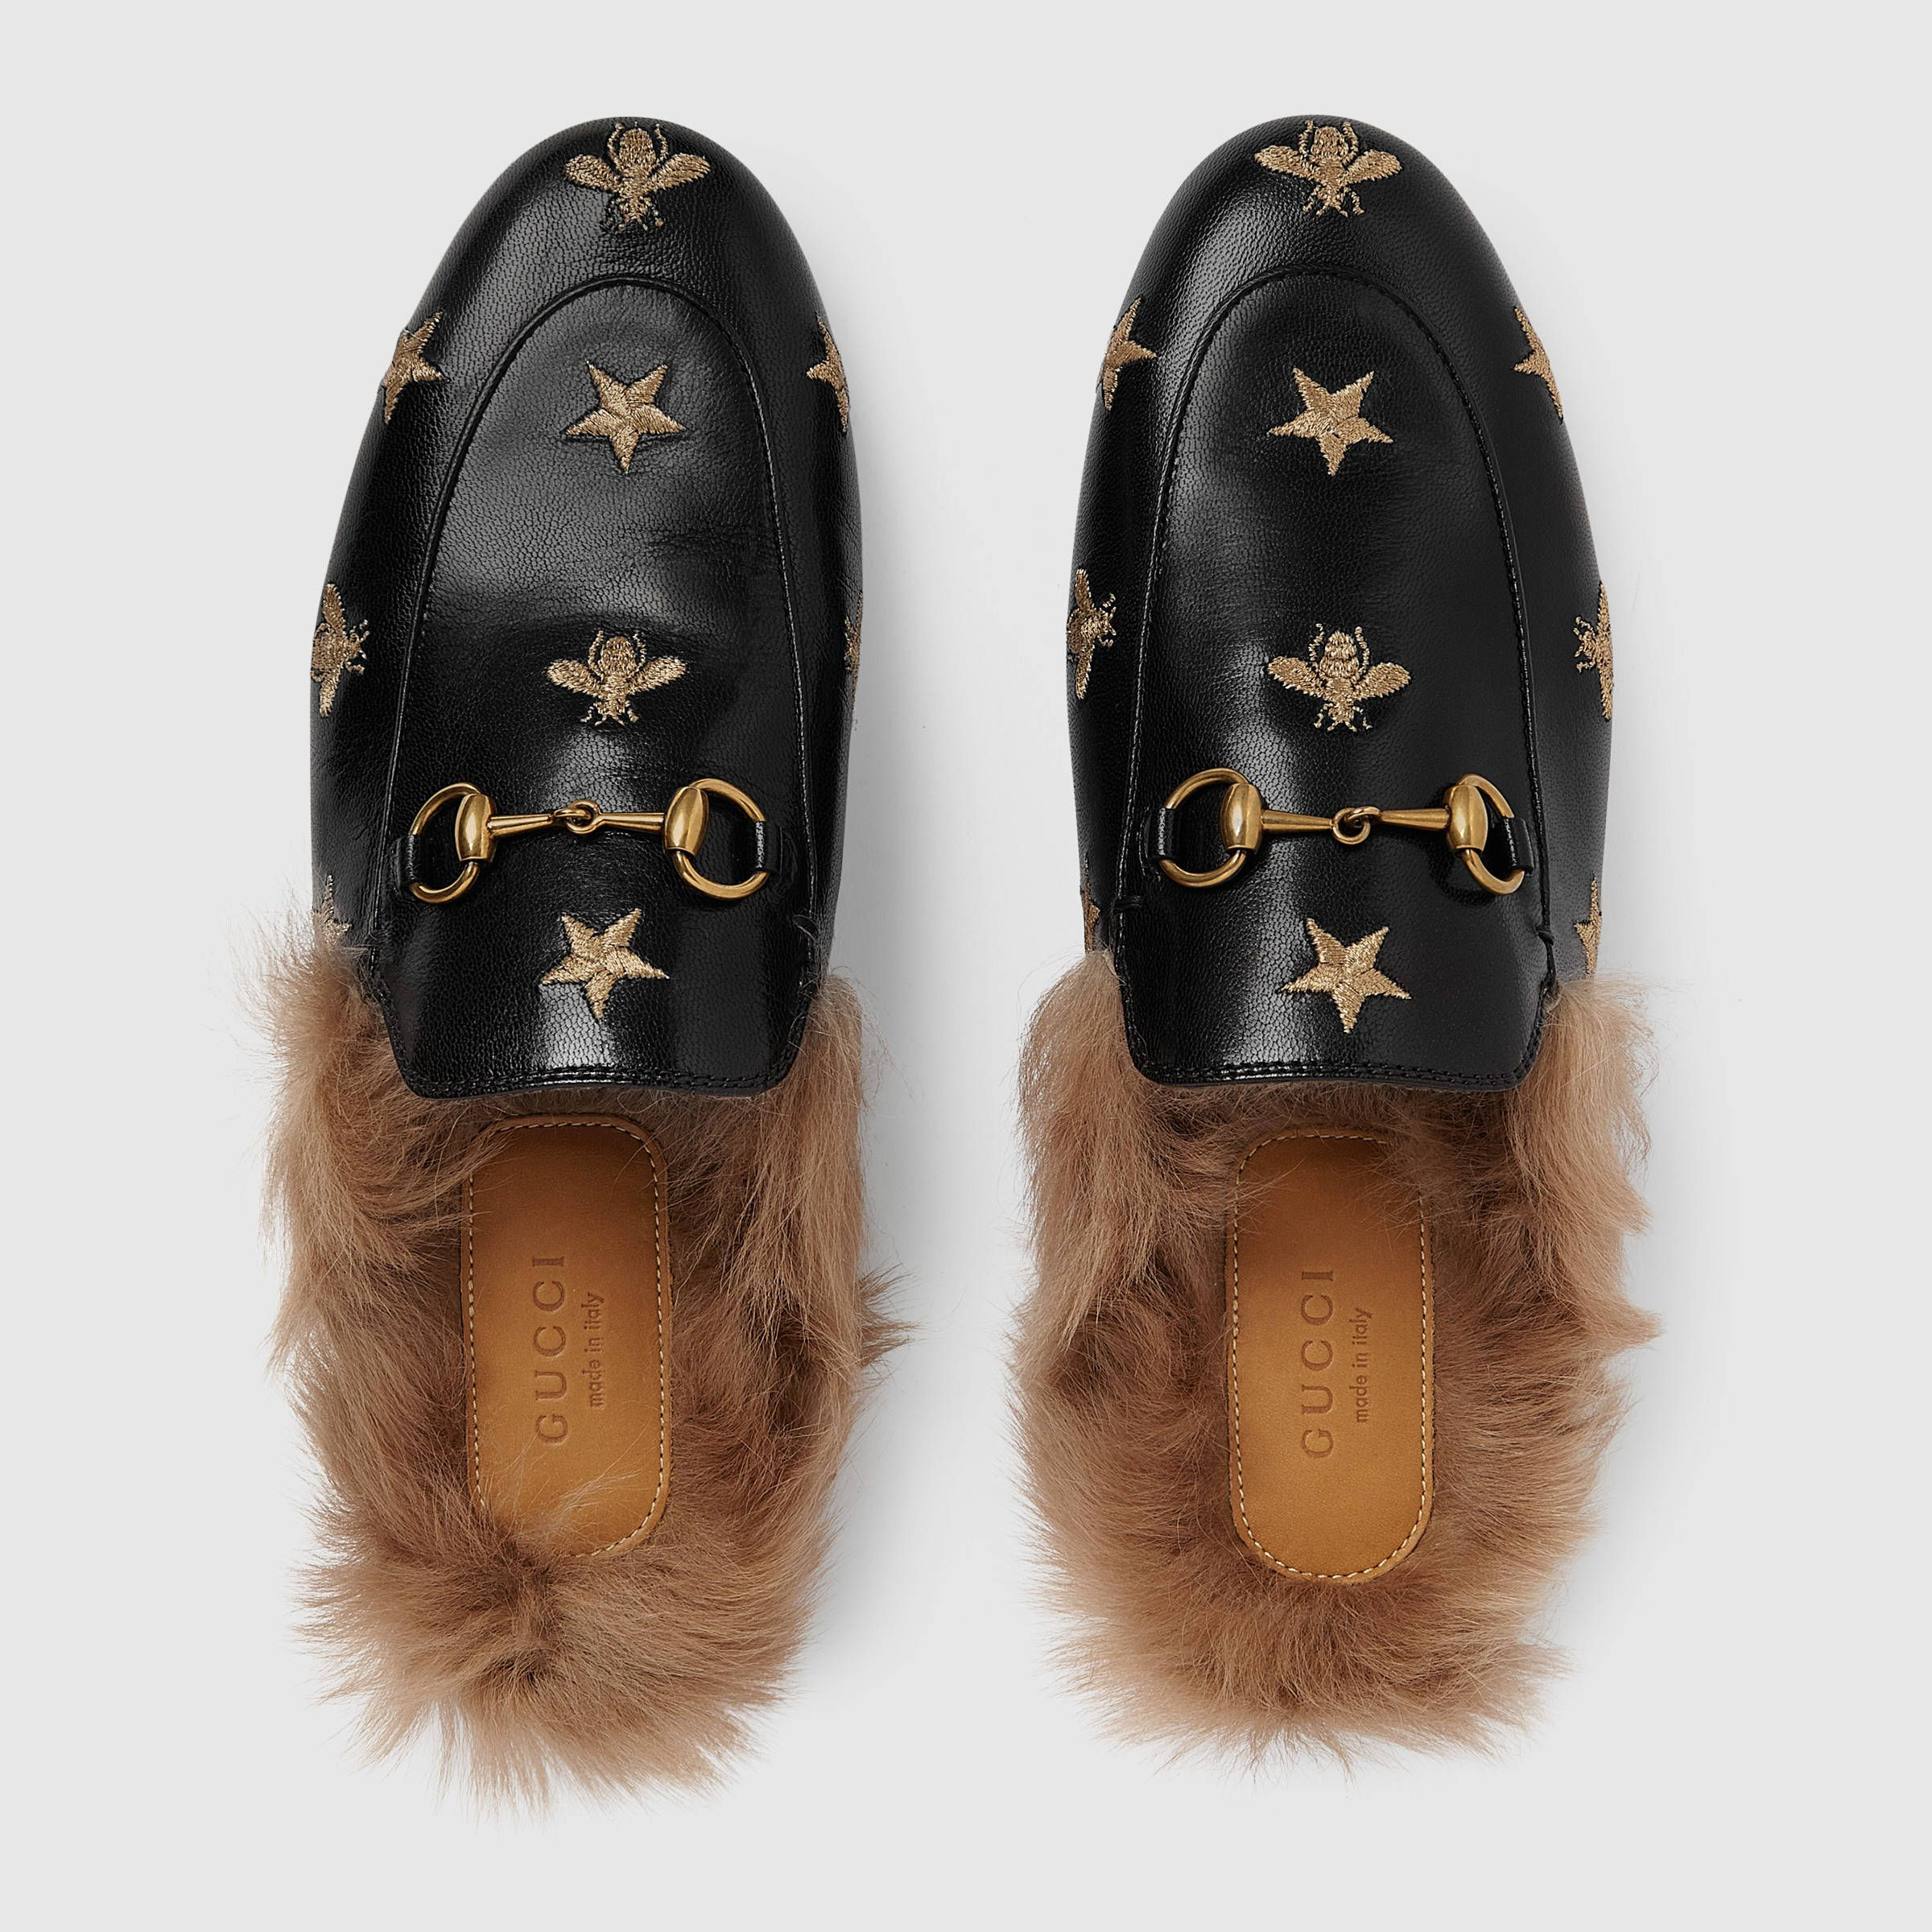 ae660d5f0d0c0 Princetown embroidered leather slipper | shoes | Leather slippers ...